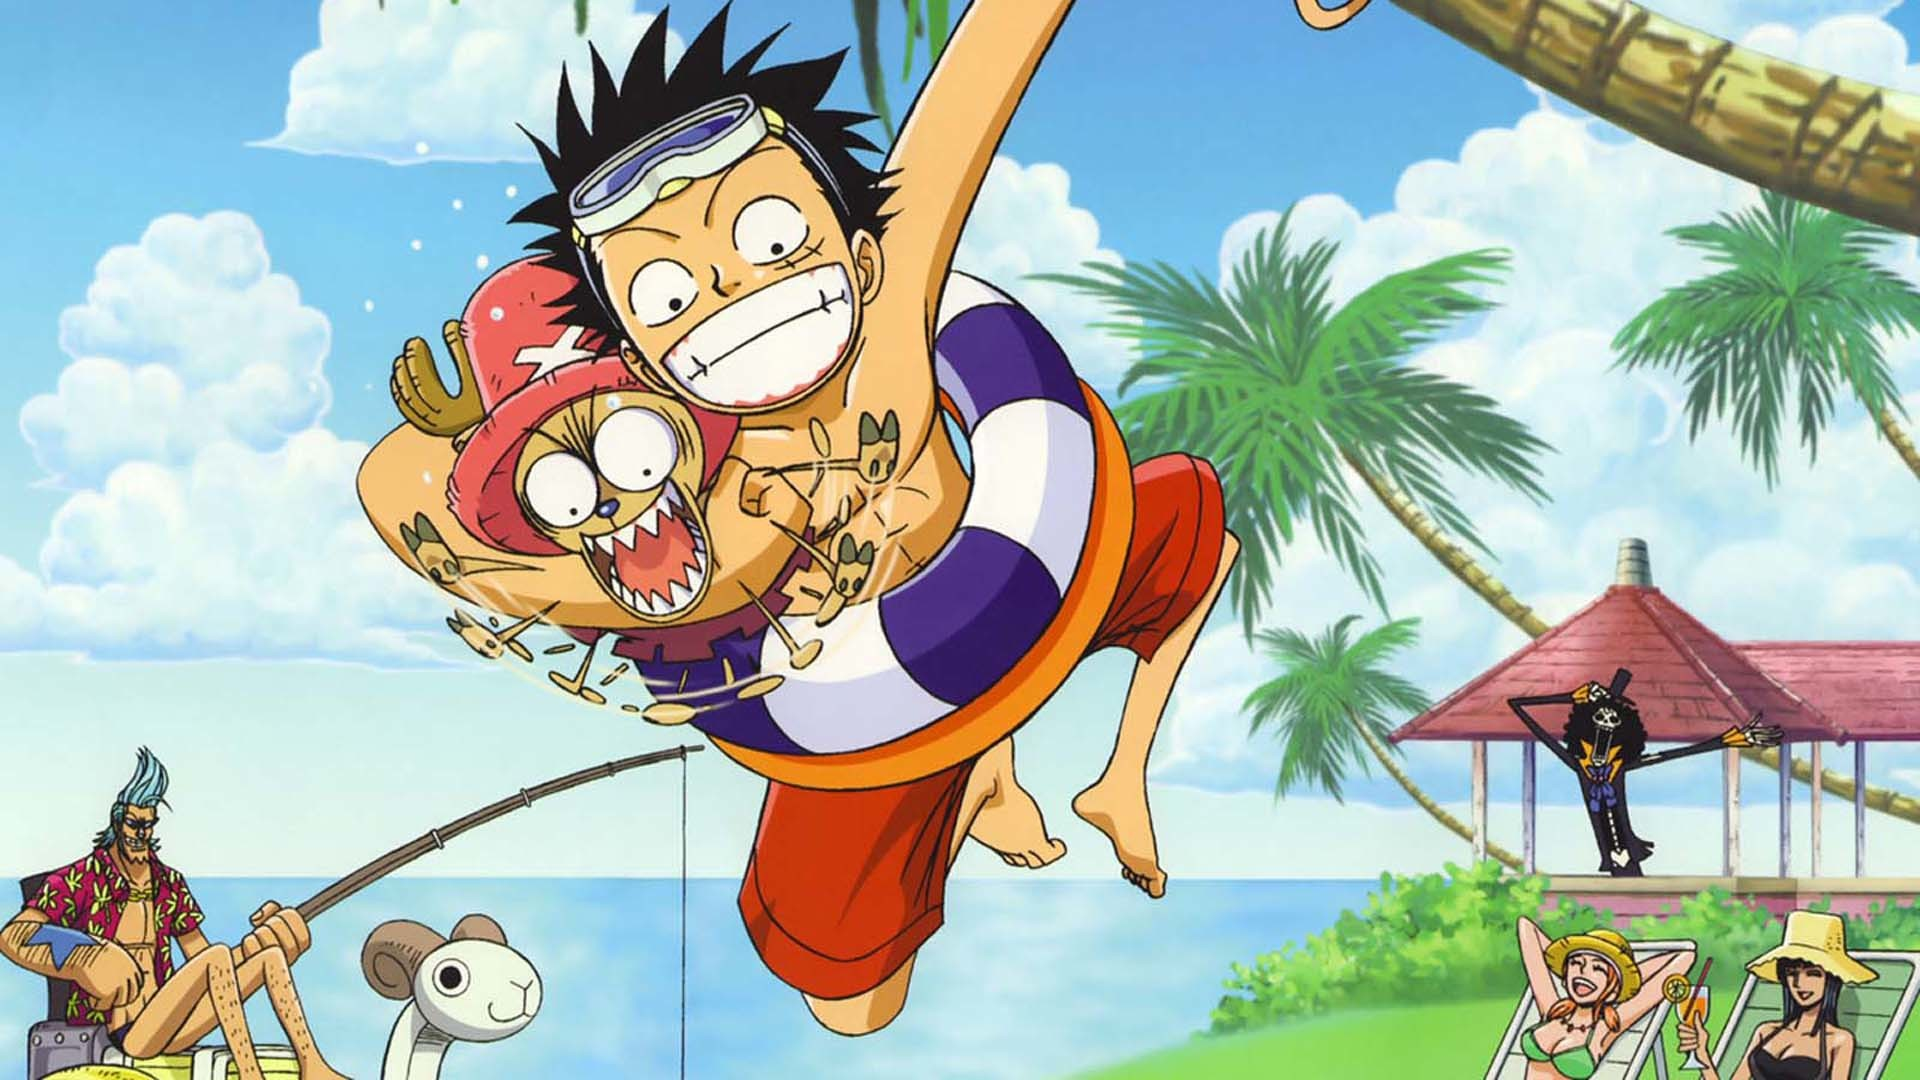 1920x1080 One Piece Chibi Wallpaper Hd New World